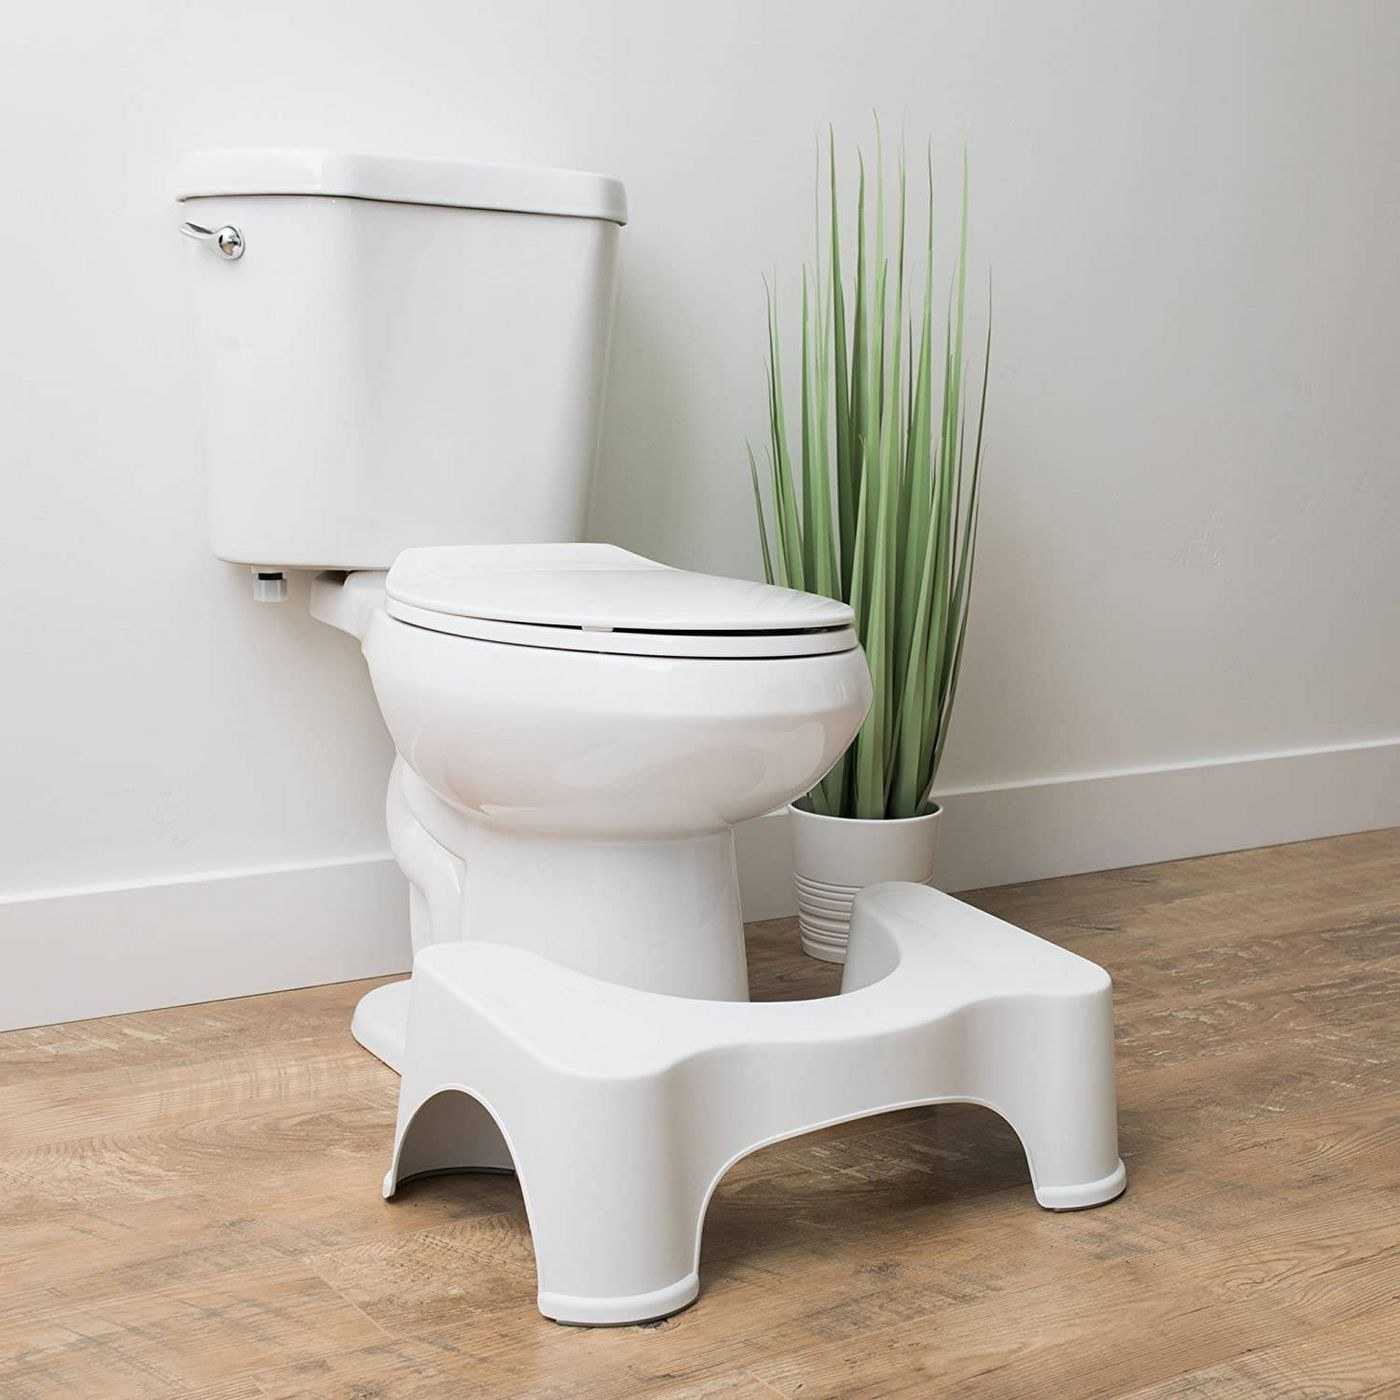 the squatty potty positioned in front of a toilet